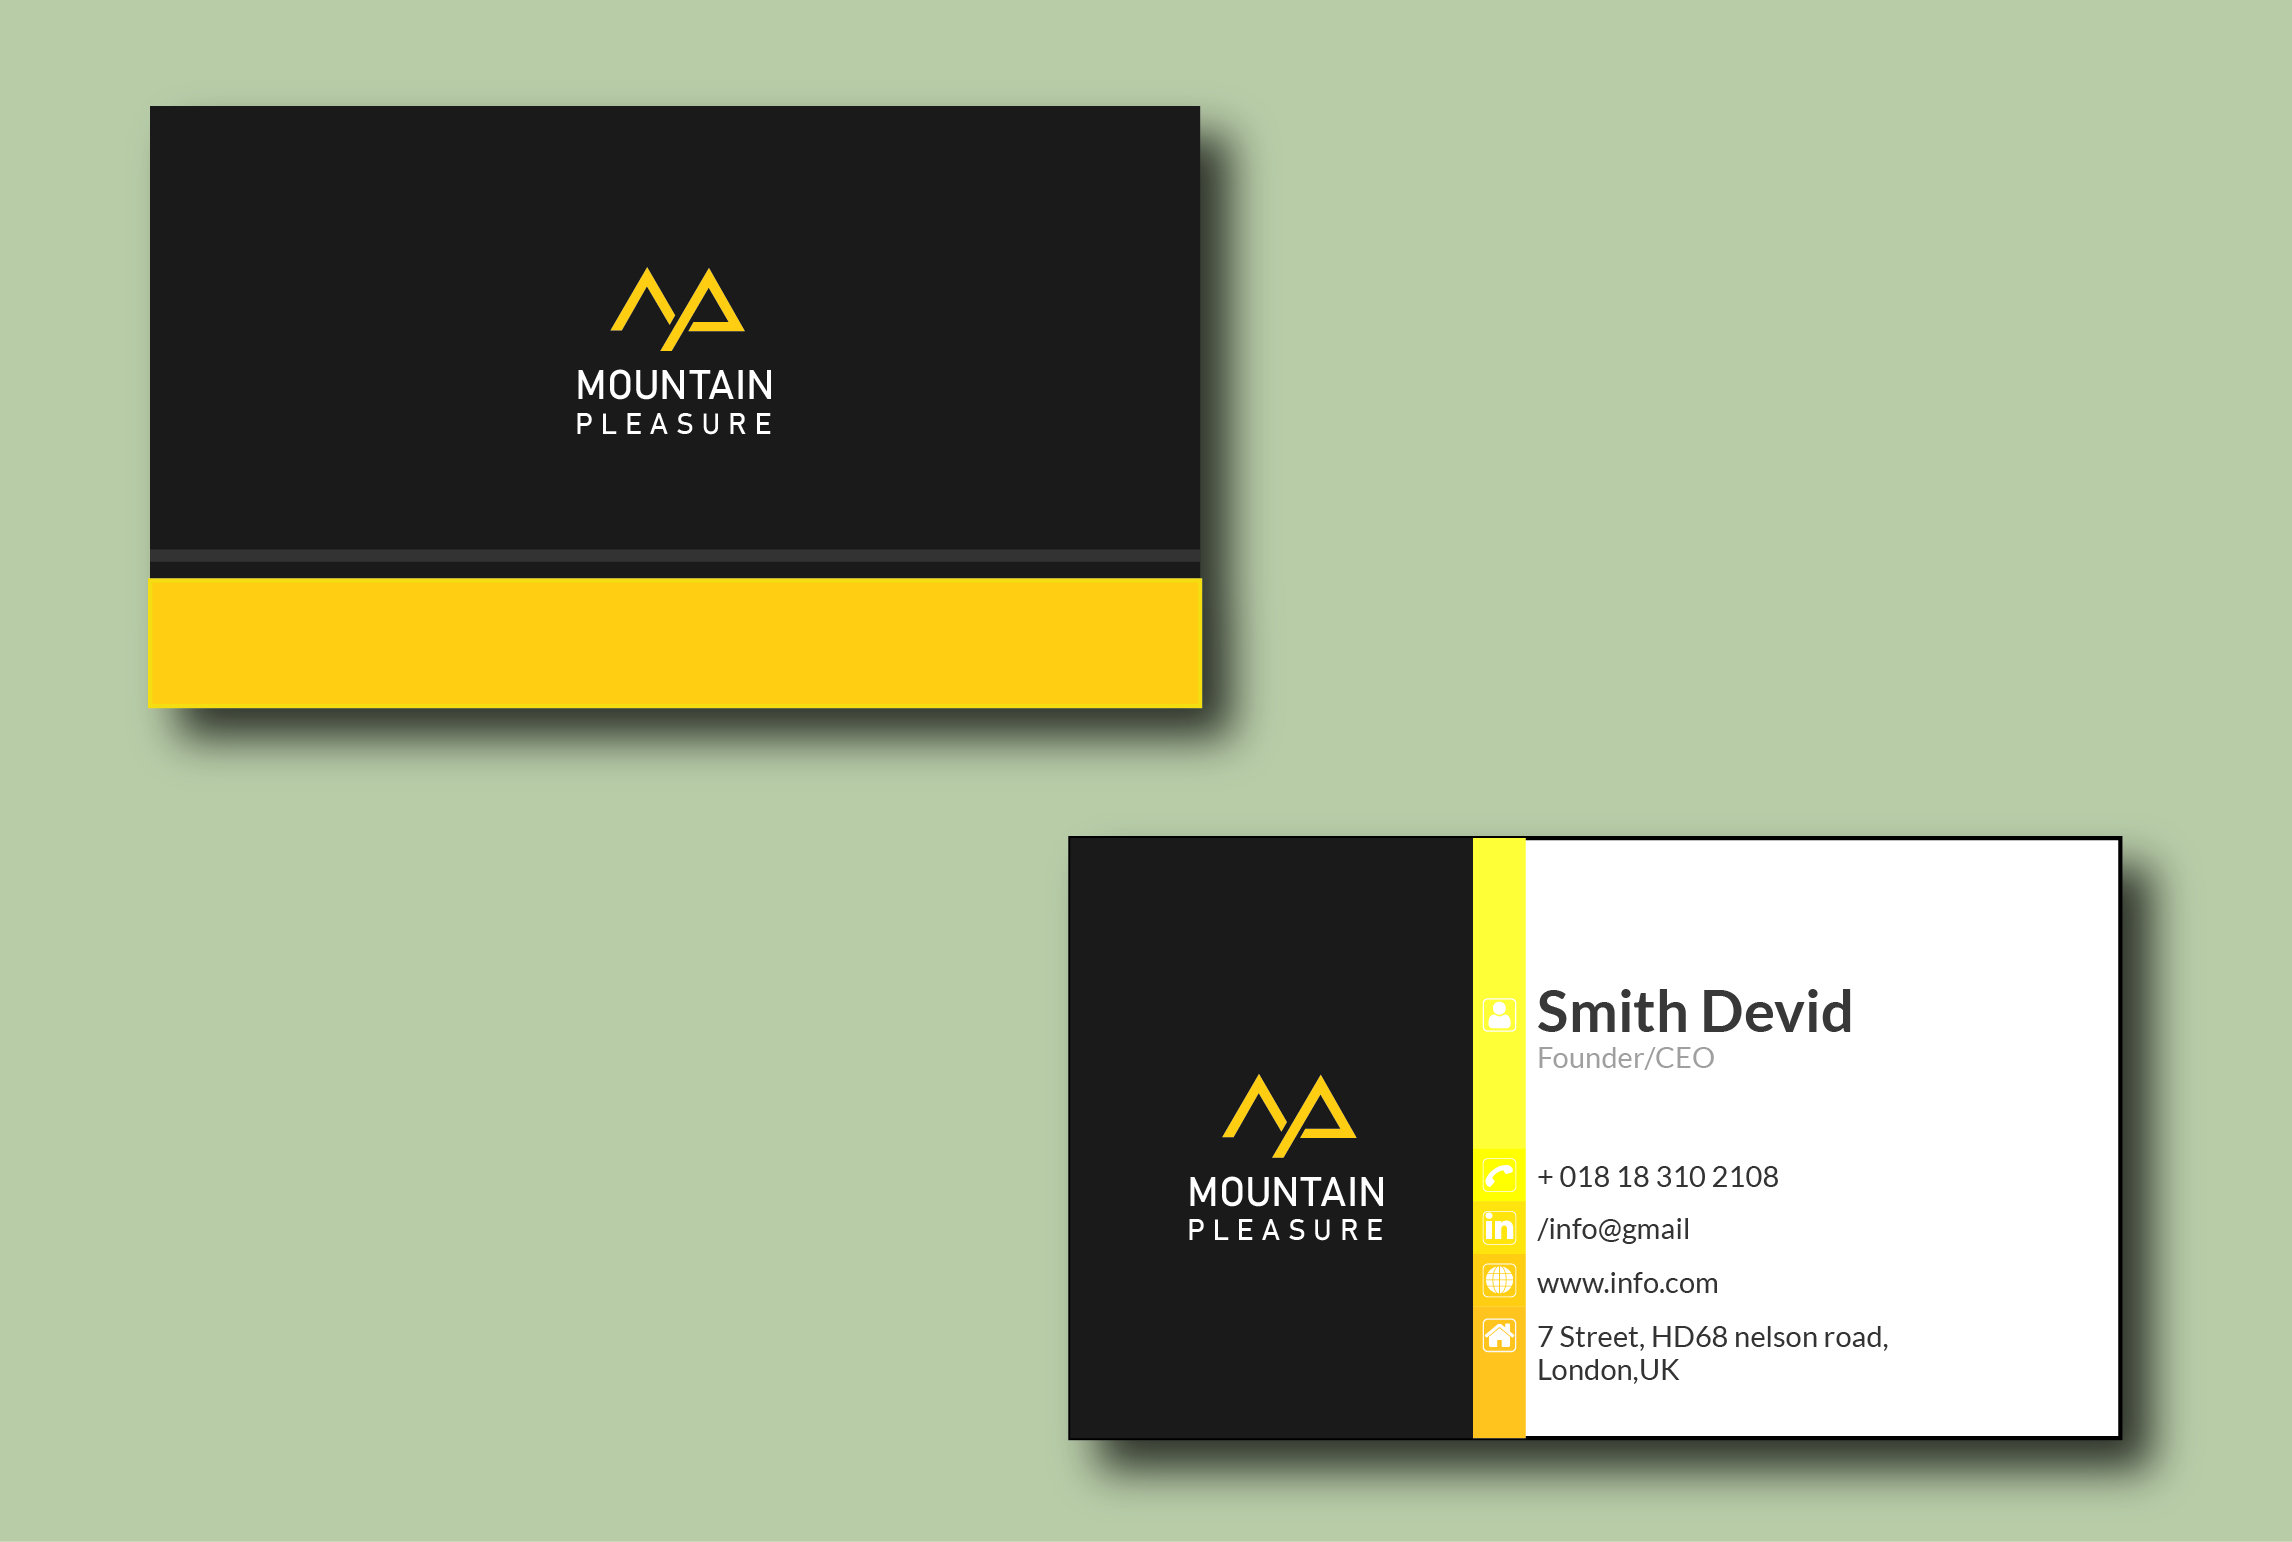 I will design outstanding minimalist business card